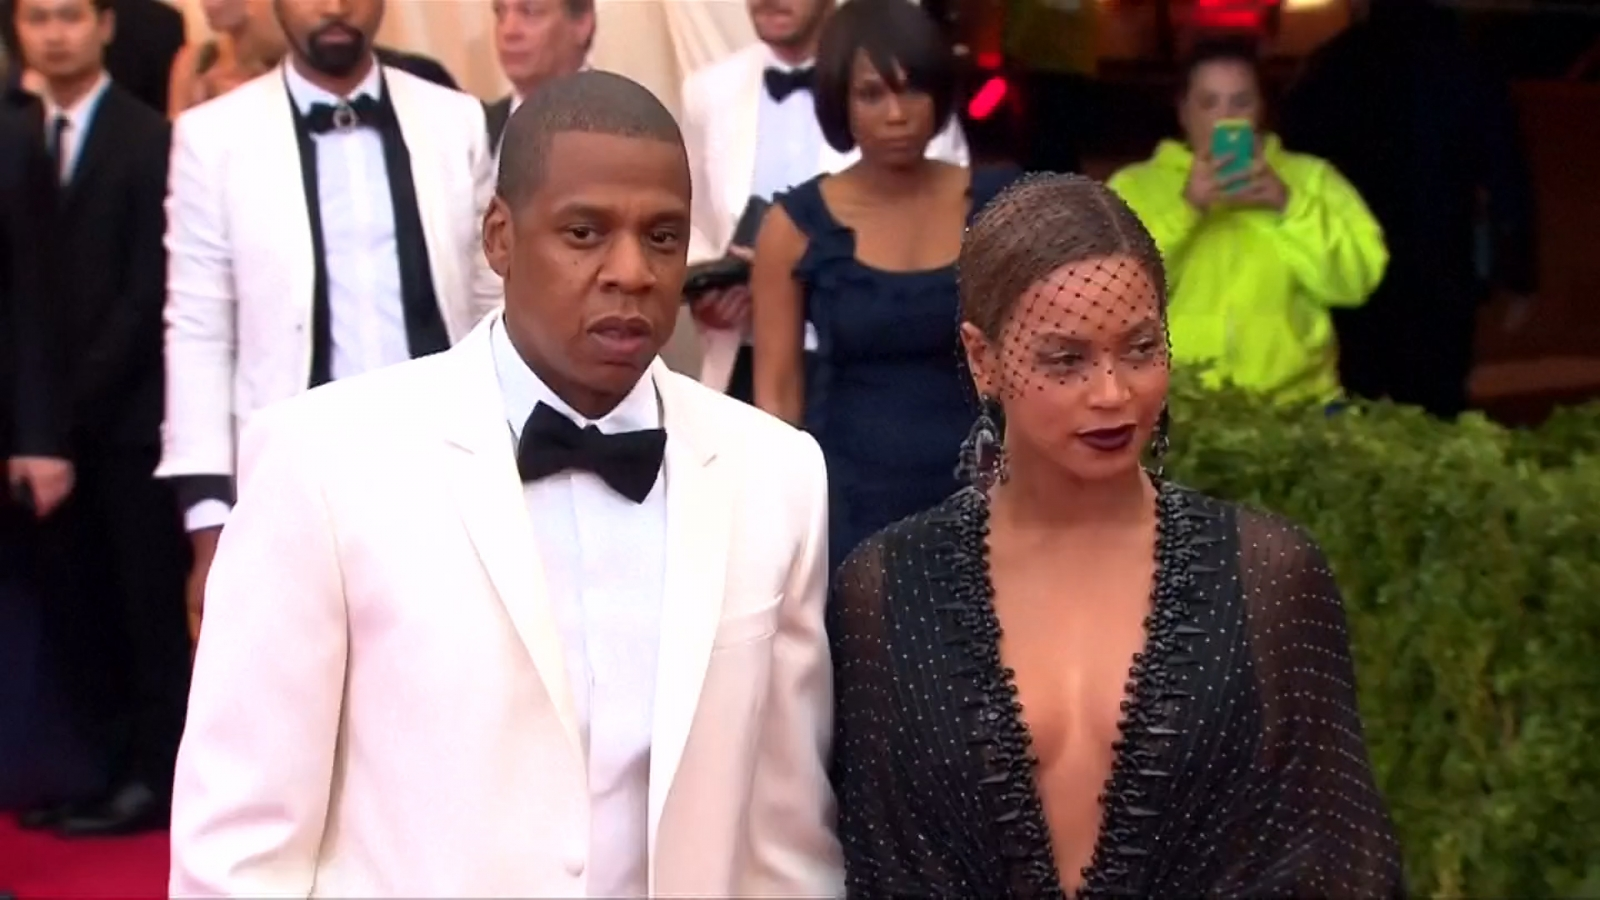 beyonce-has-given-birth-to-twins-reports-say